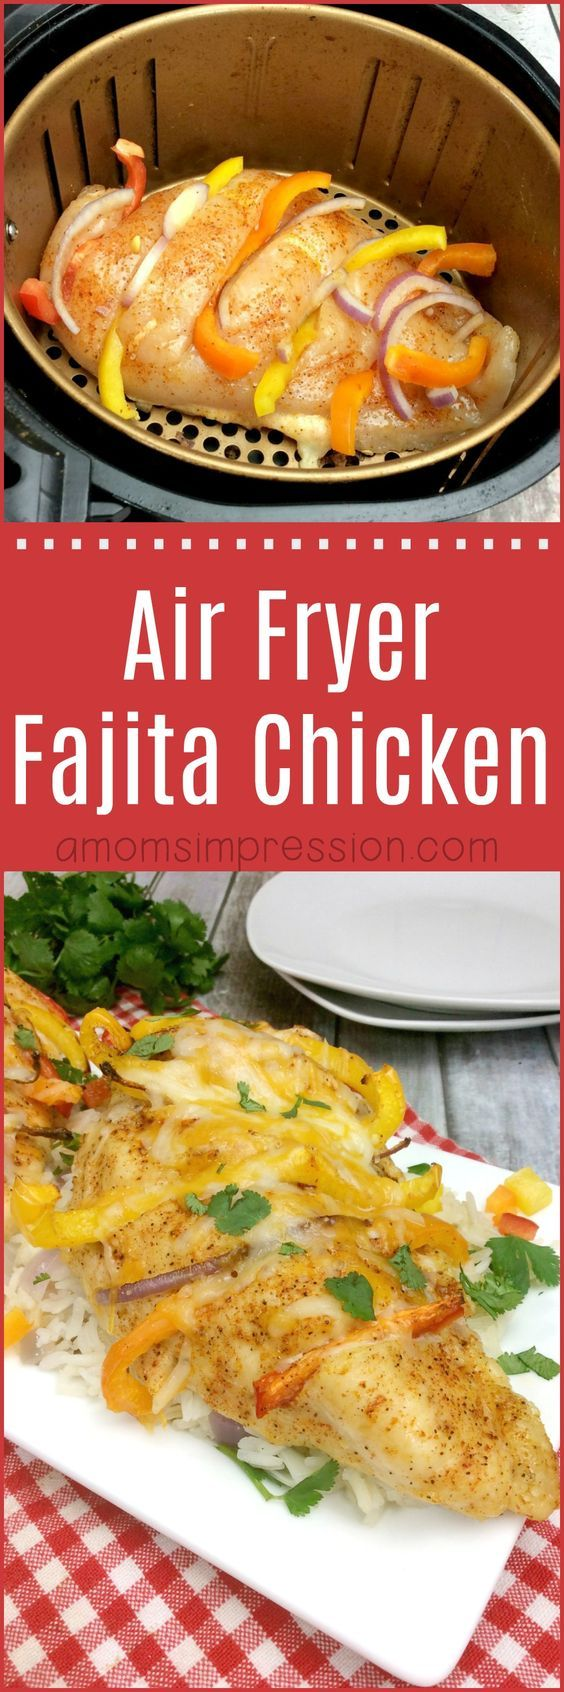 Here is a delicious and healthy air fryer fajita chicken recipe that your whole family will love. These easy step by step instructions makes this air fryer recipe easier than ever. #airfryer #fajitas #chicken via @kjhodson